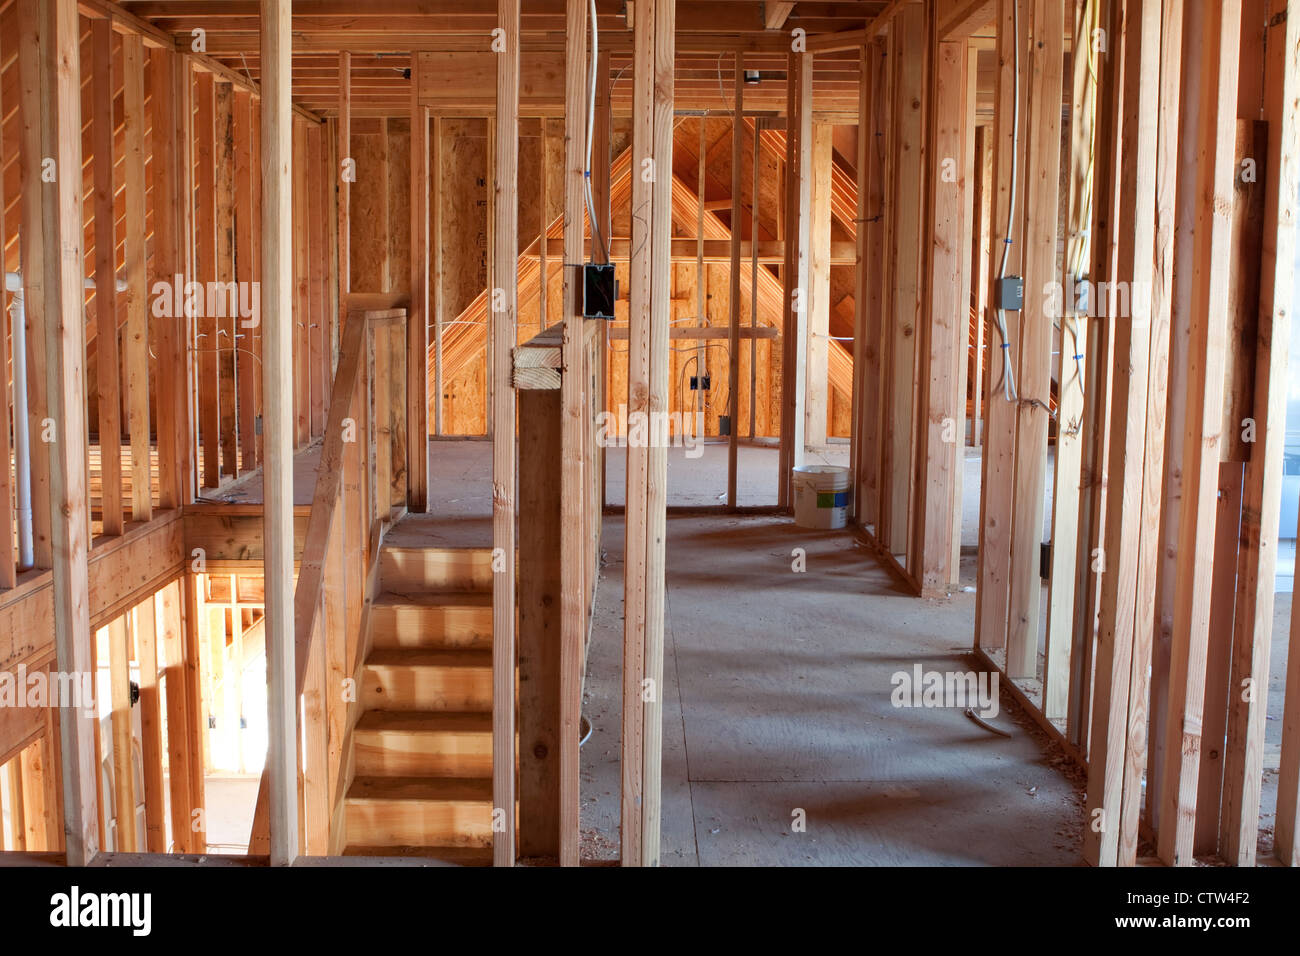 Electrical Wiring Framing Stock Photos Log Home Framed Building Or Residential With Basic And Hvac Complete Image